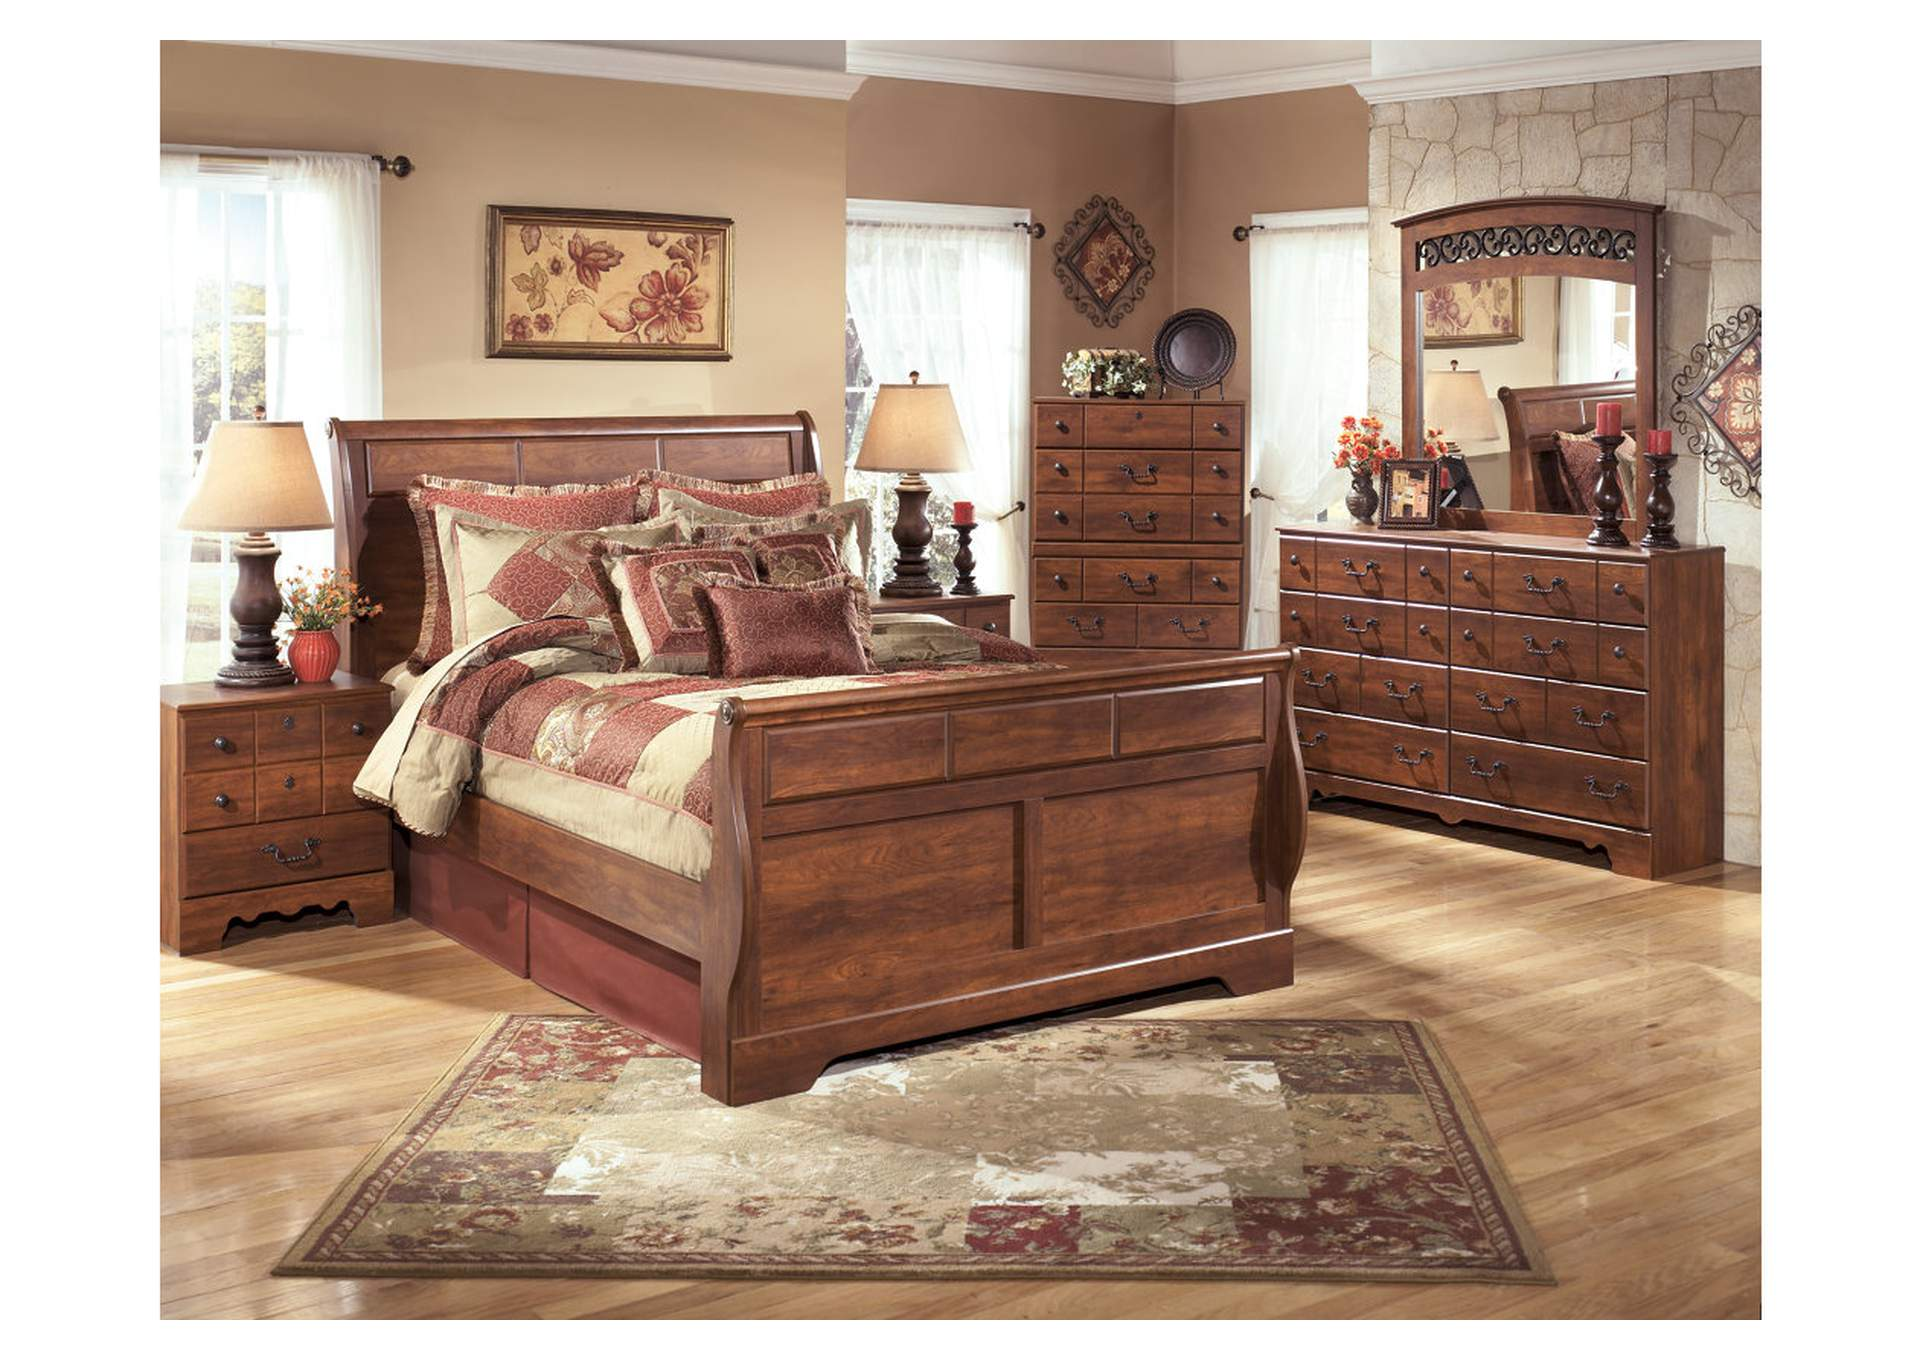 Timberline Queen Sleigh Bed,Signature Design By Ashley